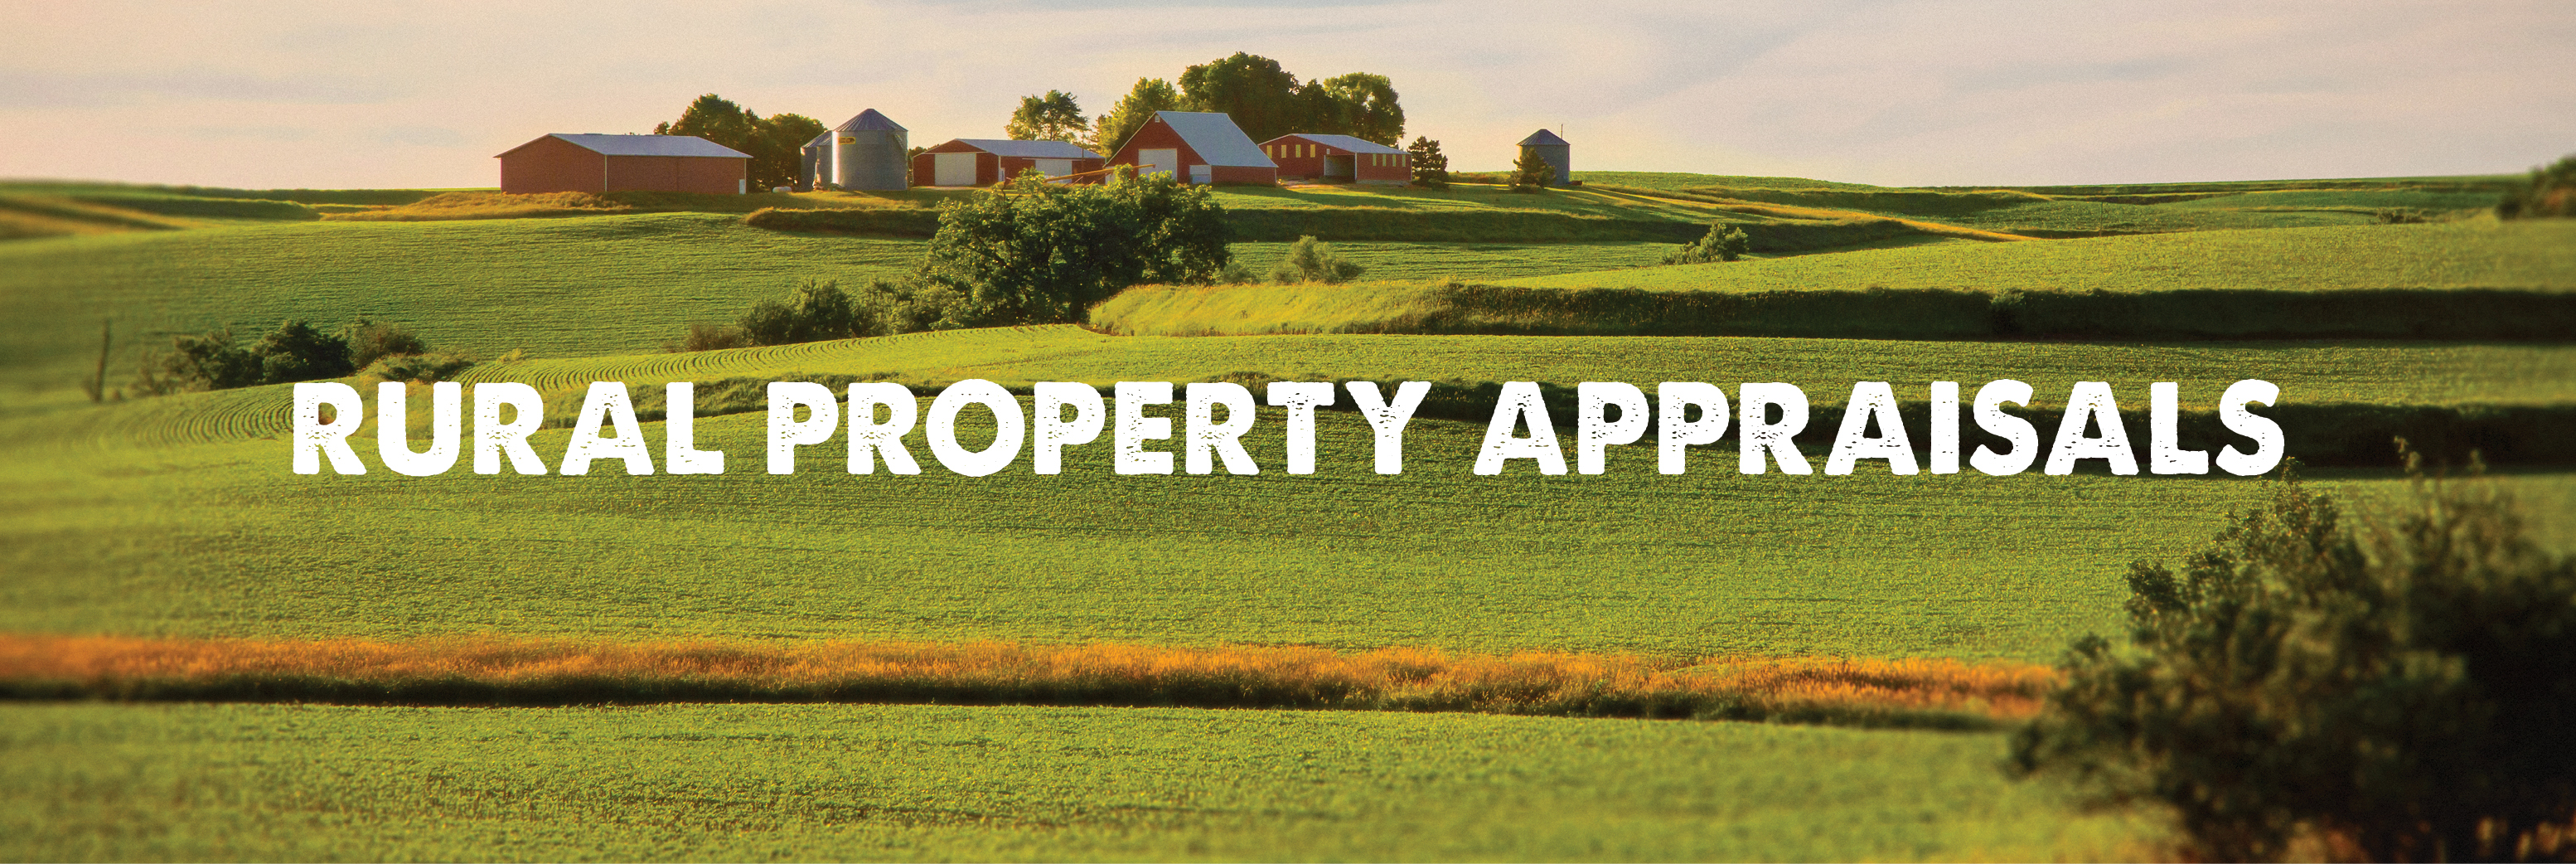 Rural Property Appraisals